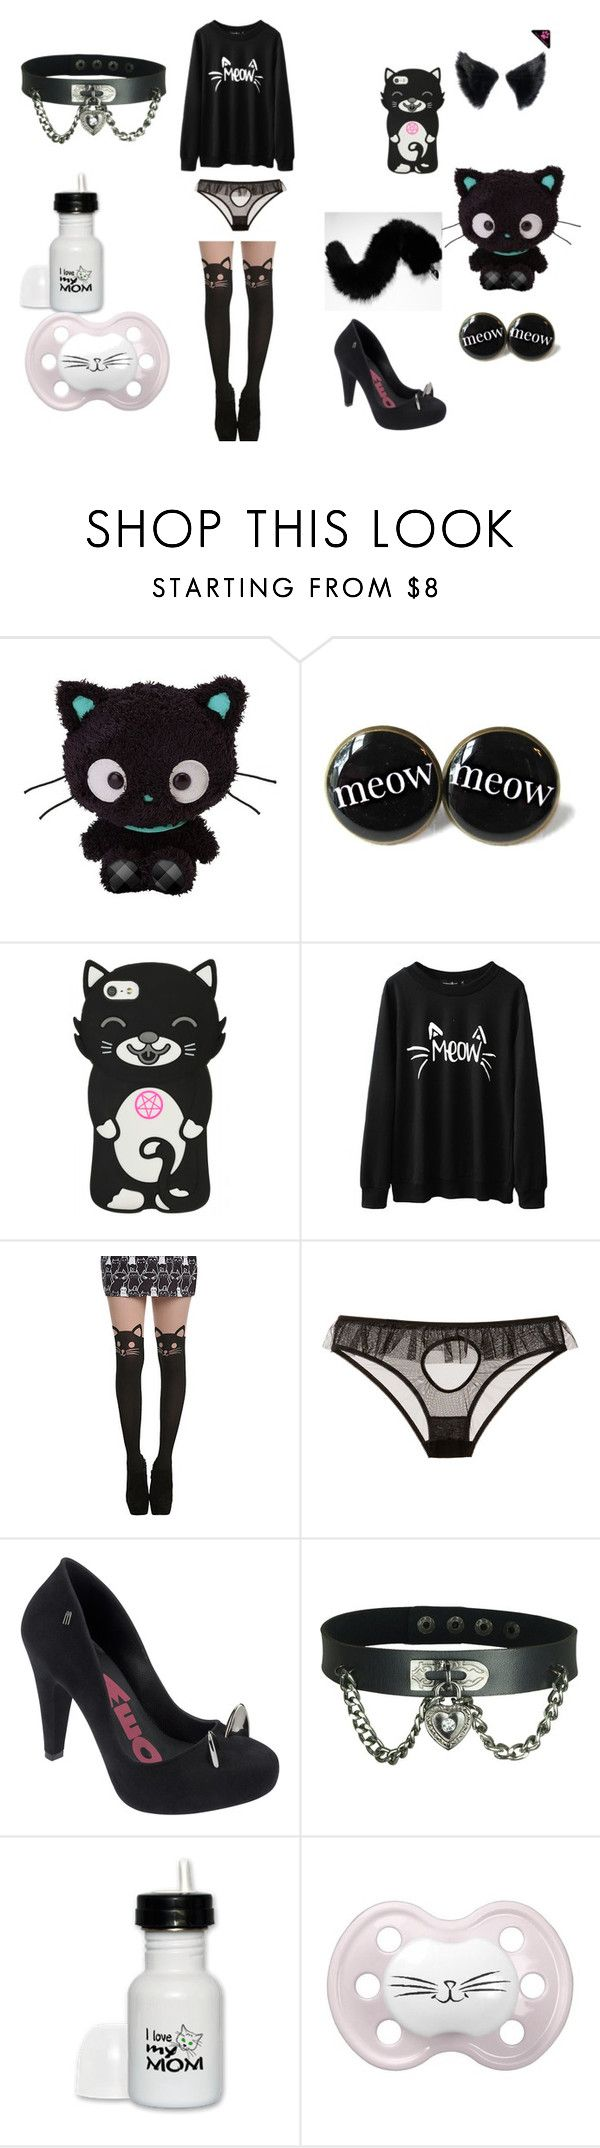 """""""Black Kittenplay Little Space Outfit"""" by nina-fluffin-radke ❤ liked on Polyvore featuring Le Petite Trou and Melissa"""